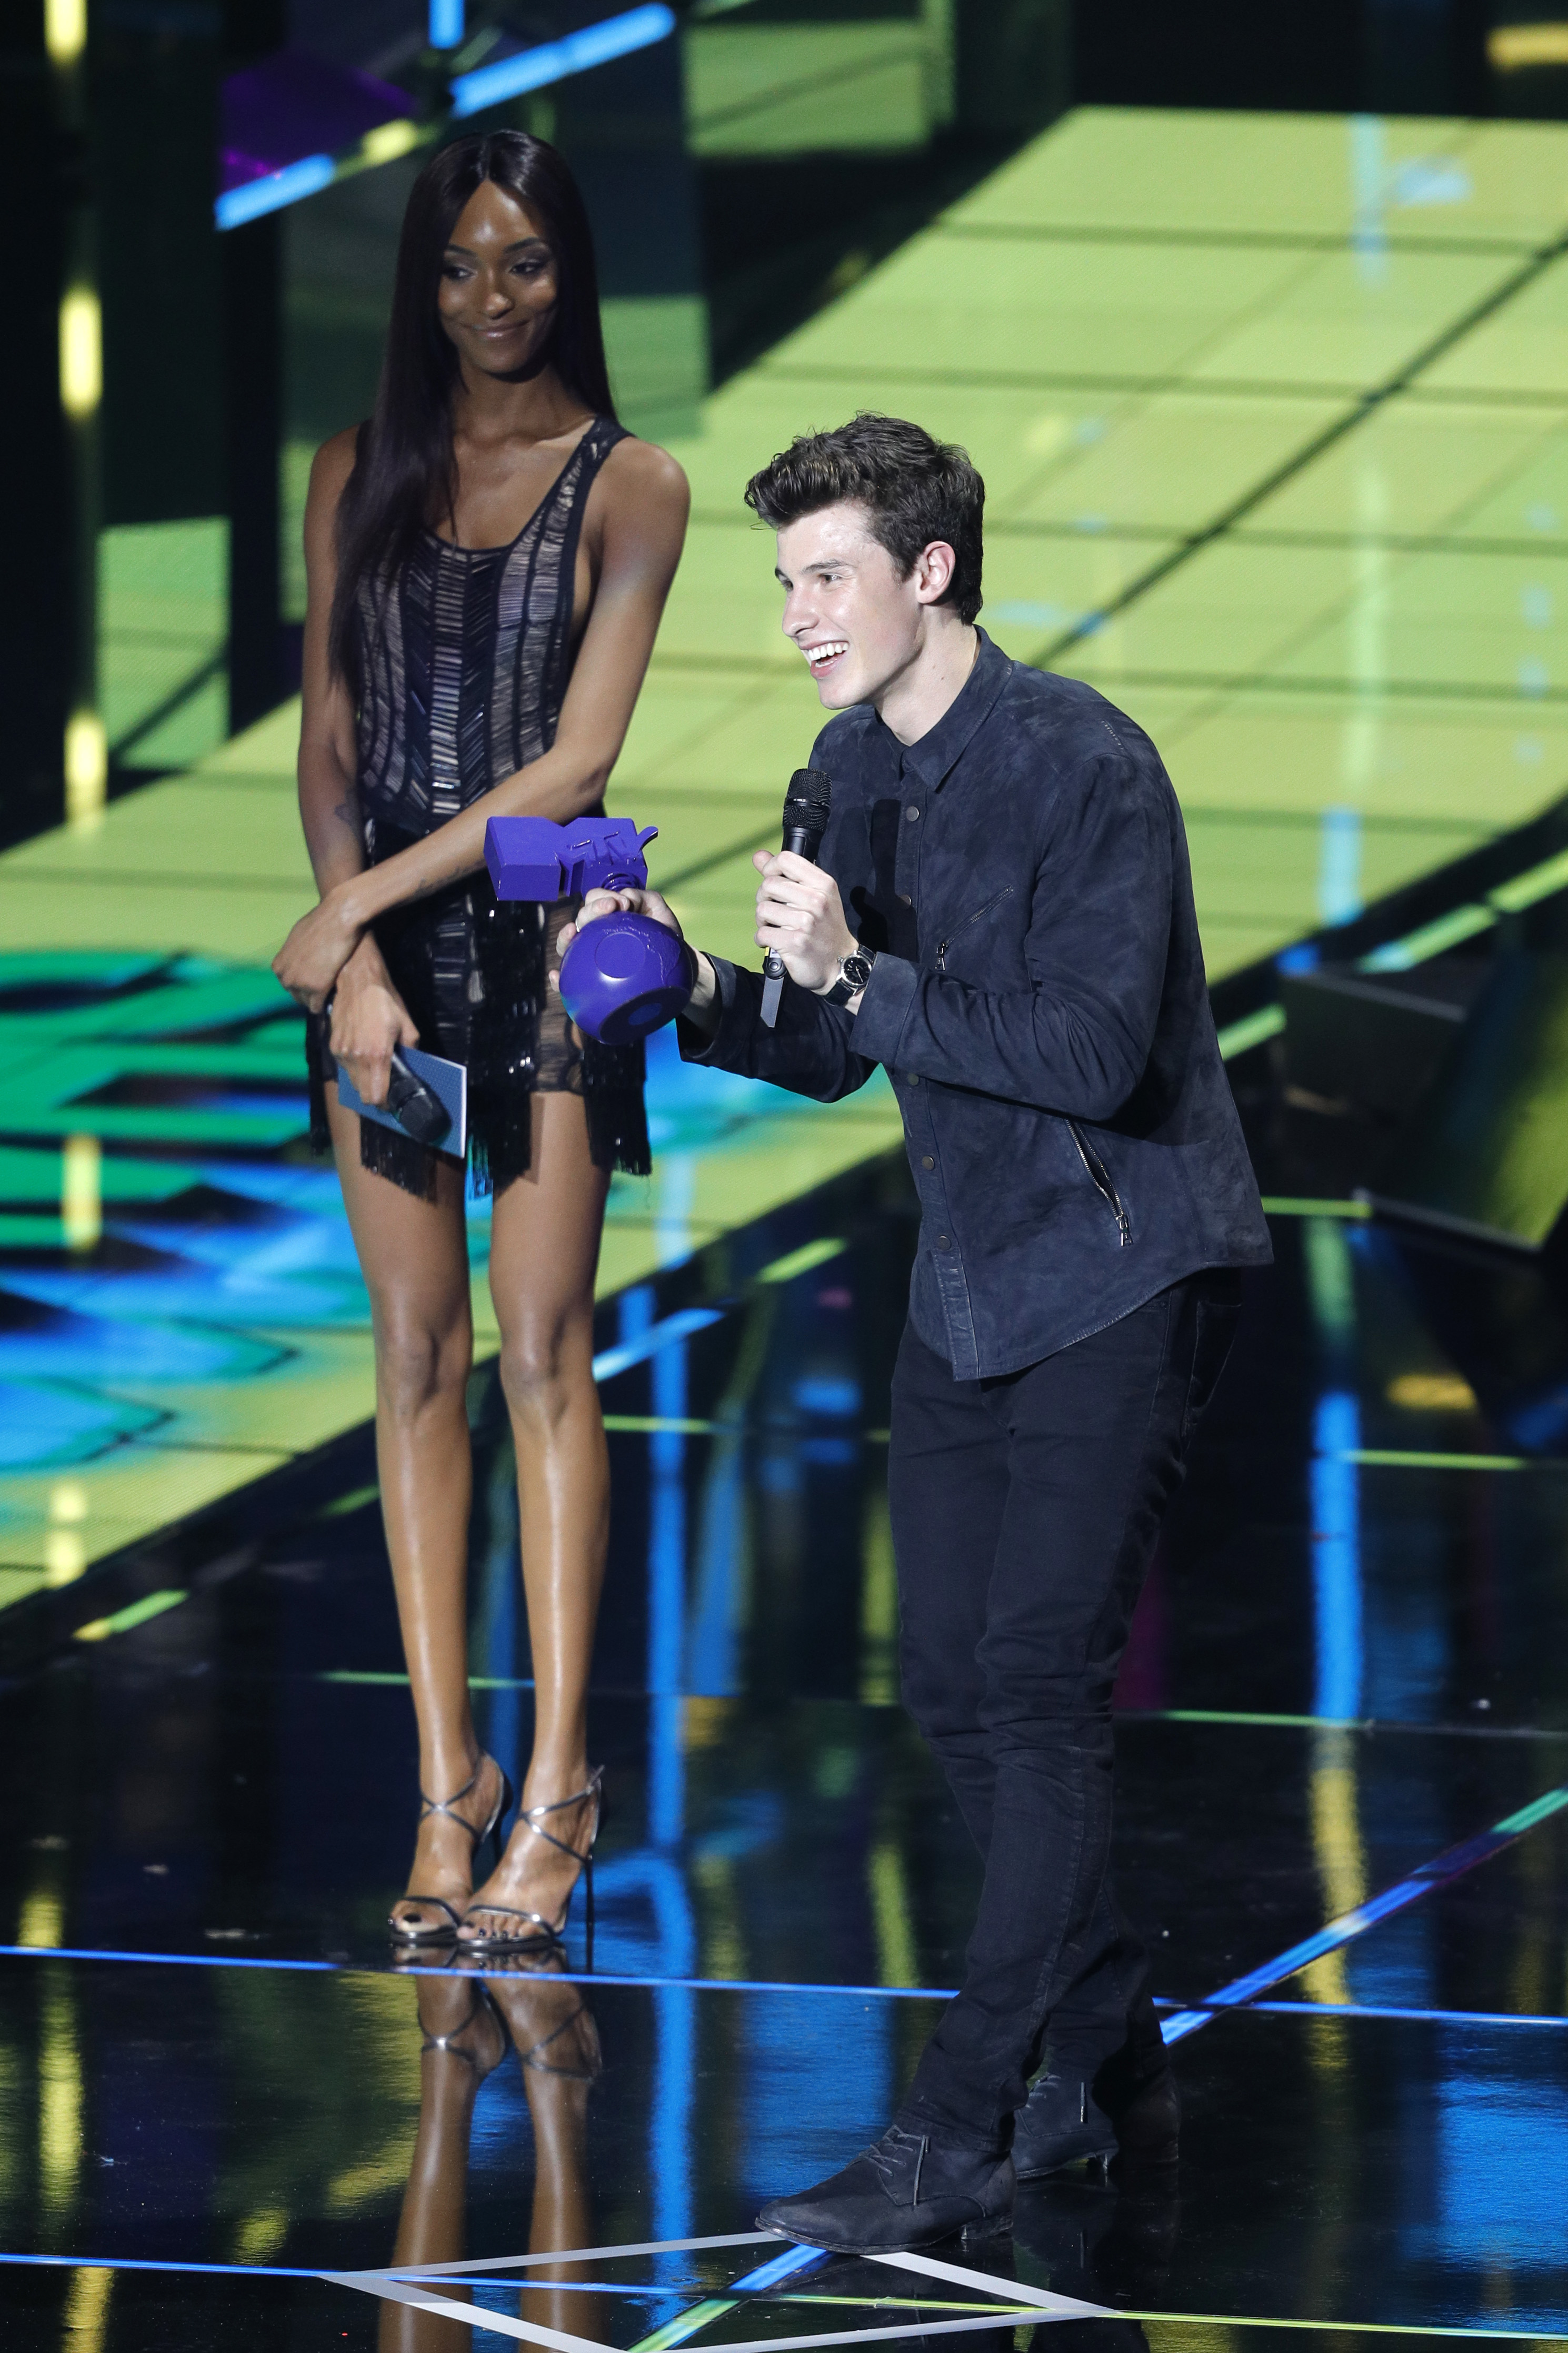 ROTTERDAM, NETHERLANDS - NOVEMBER 06:  Singer Shawn Mendes accepts the award for Best Male from Jourdan Dunn on stage at the MTV Europe Music Awards 2016 on November 6, 2016 in Rotterdam, Netherlands.  (Photo by Andreas Rentz/MTV 2016/Getty Images for MTV)